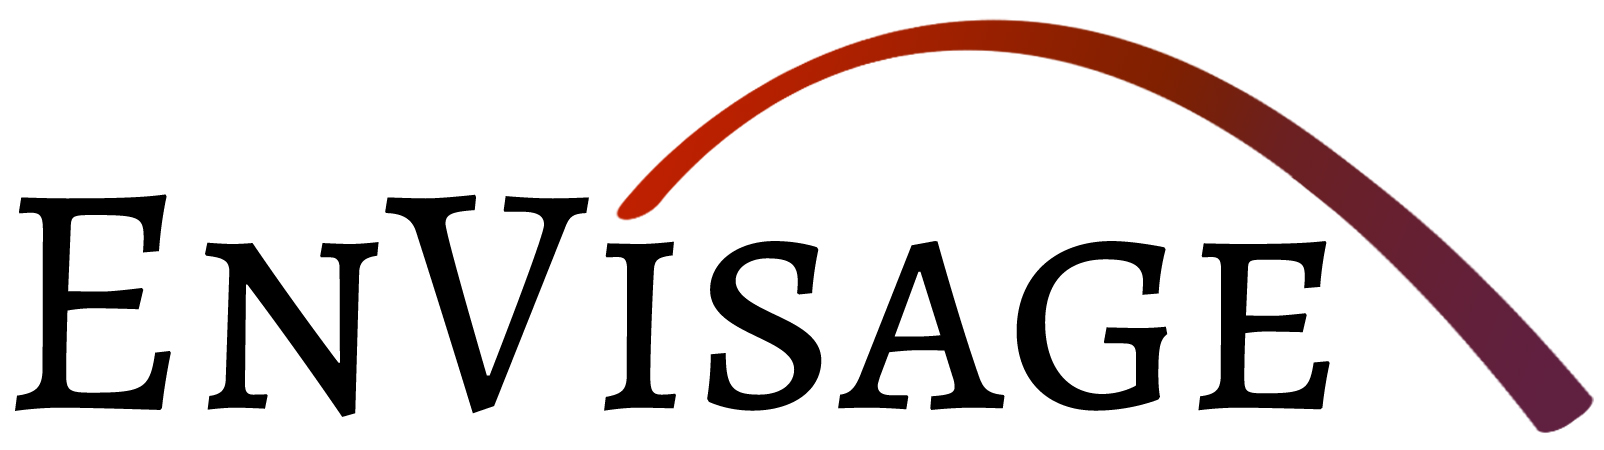 logo for Envisage Consulting